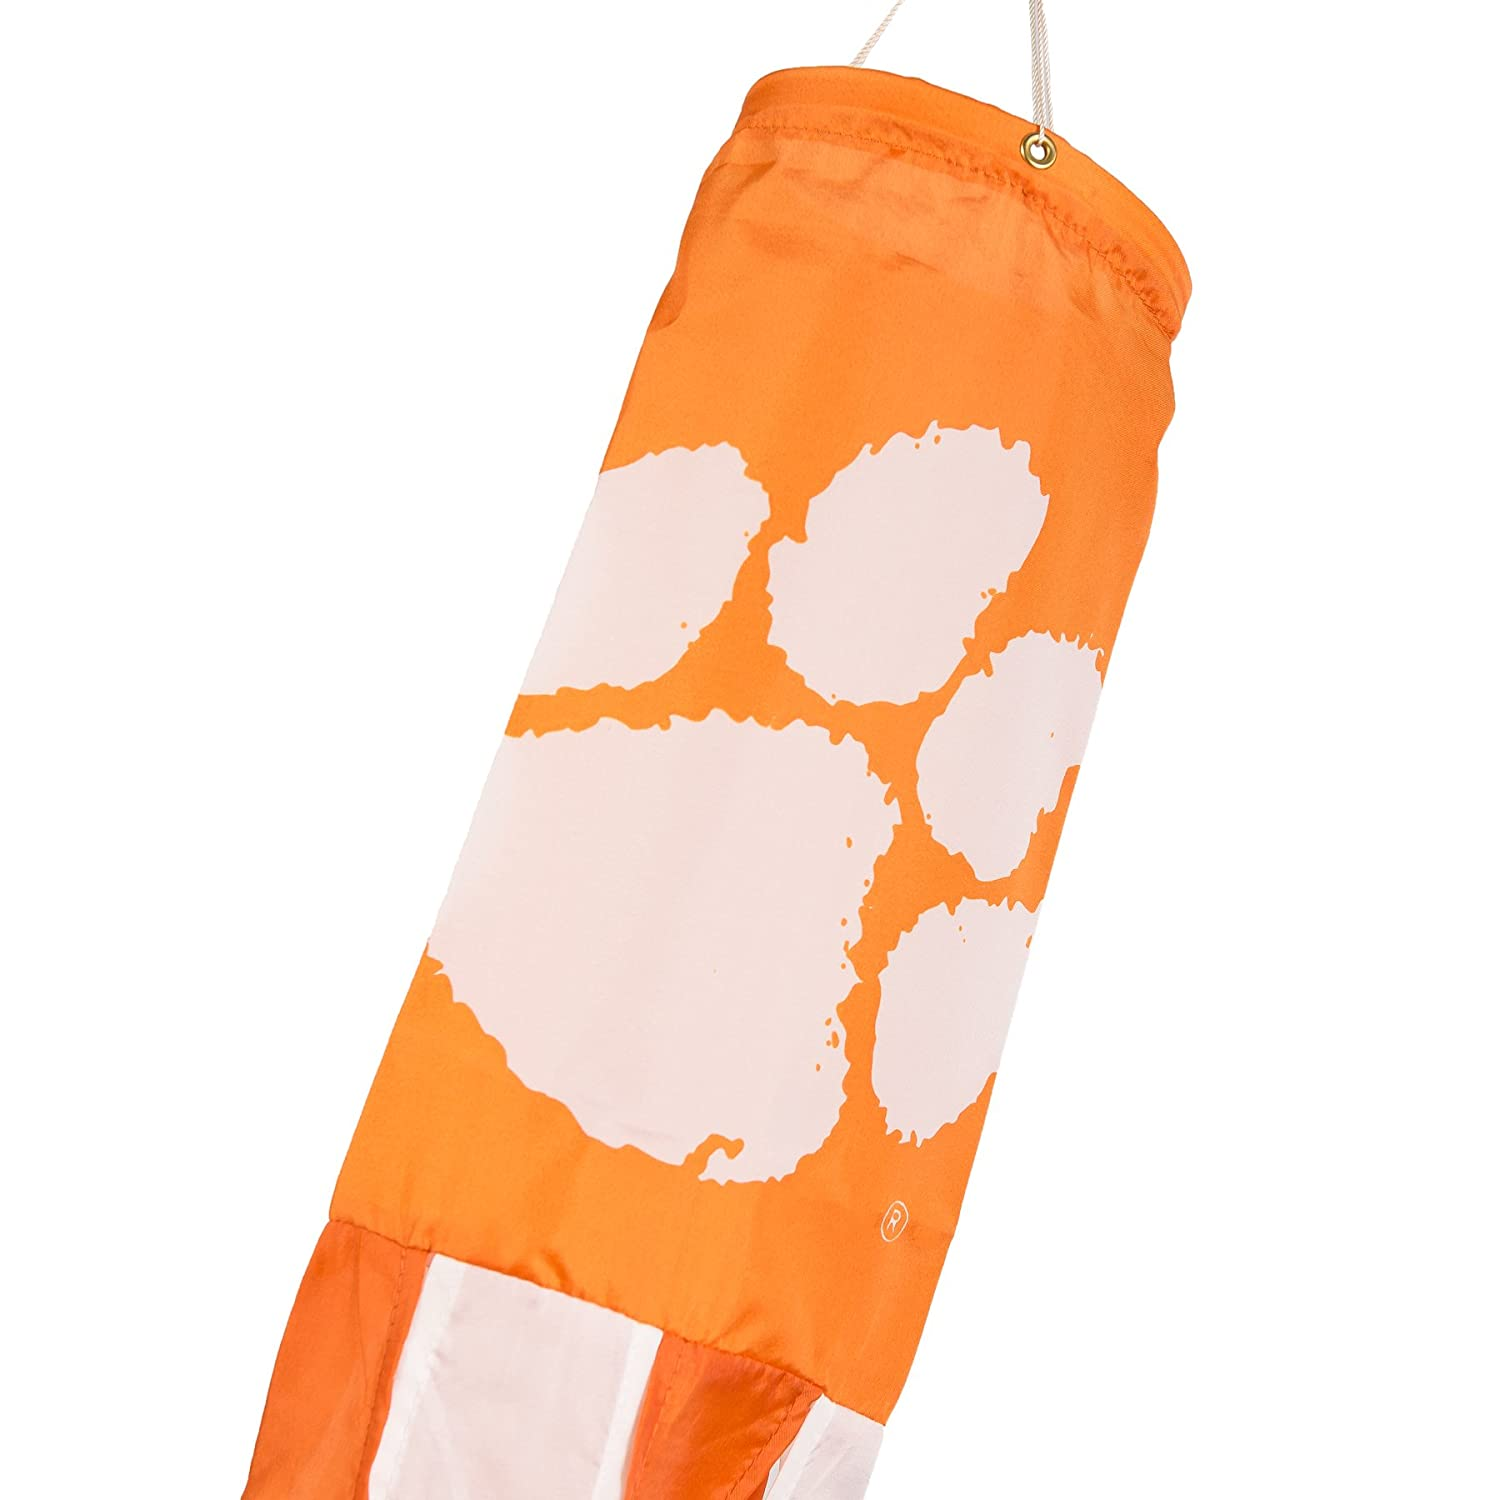 Clemson Tigers Windsock College Flags and Banners Co